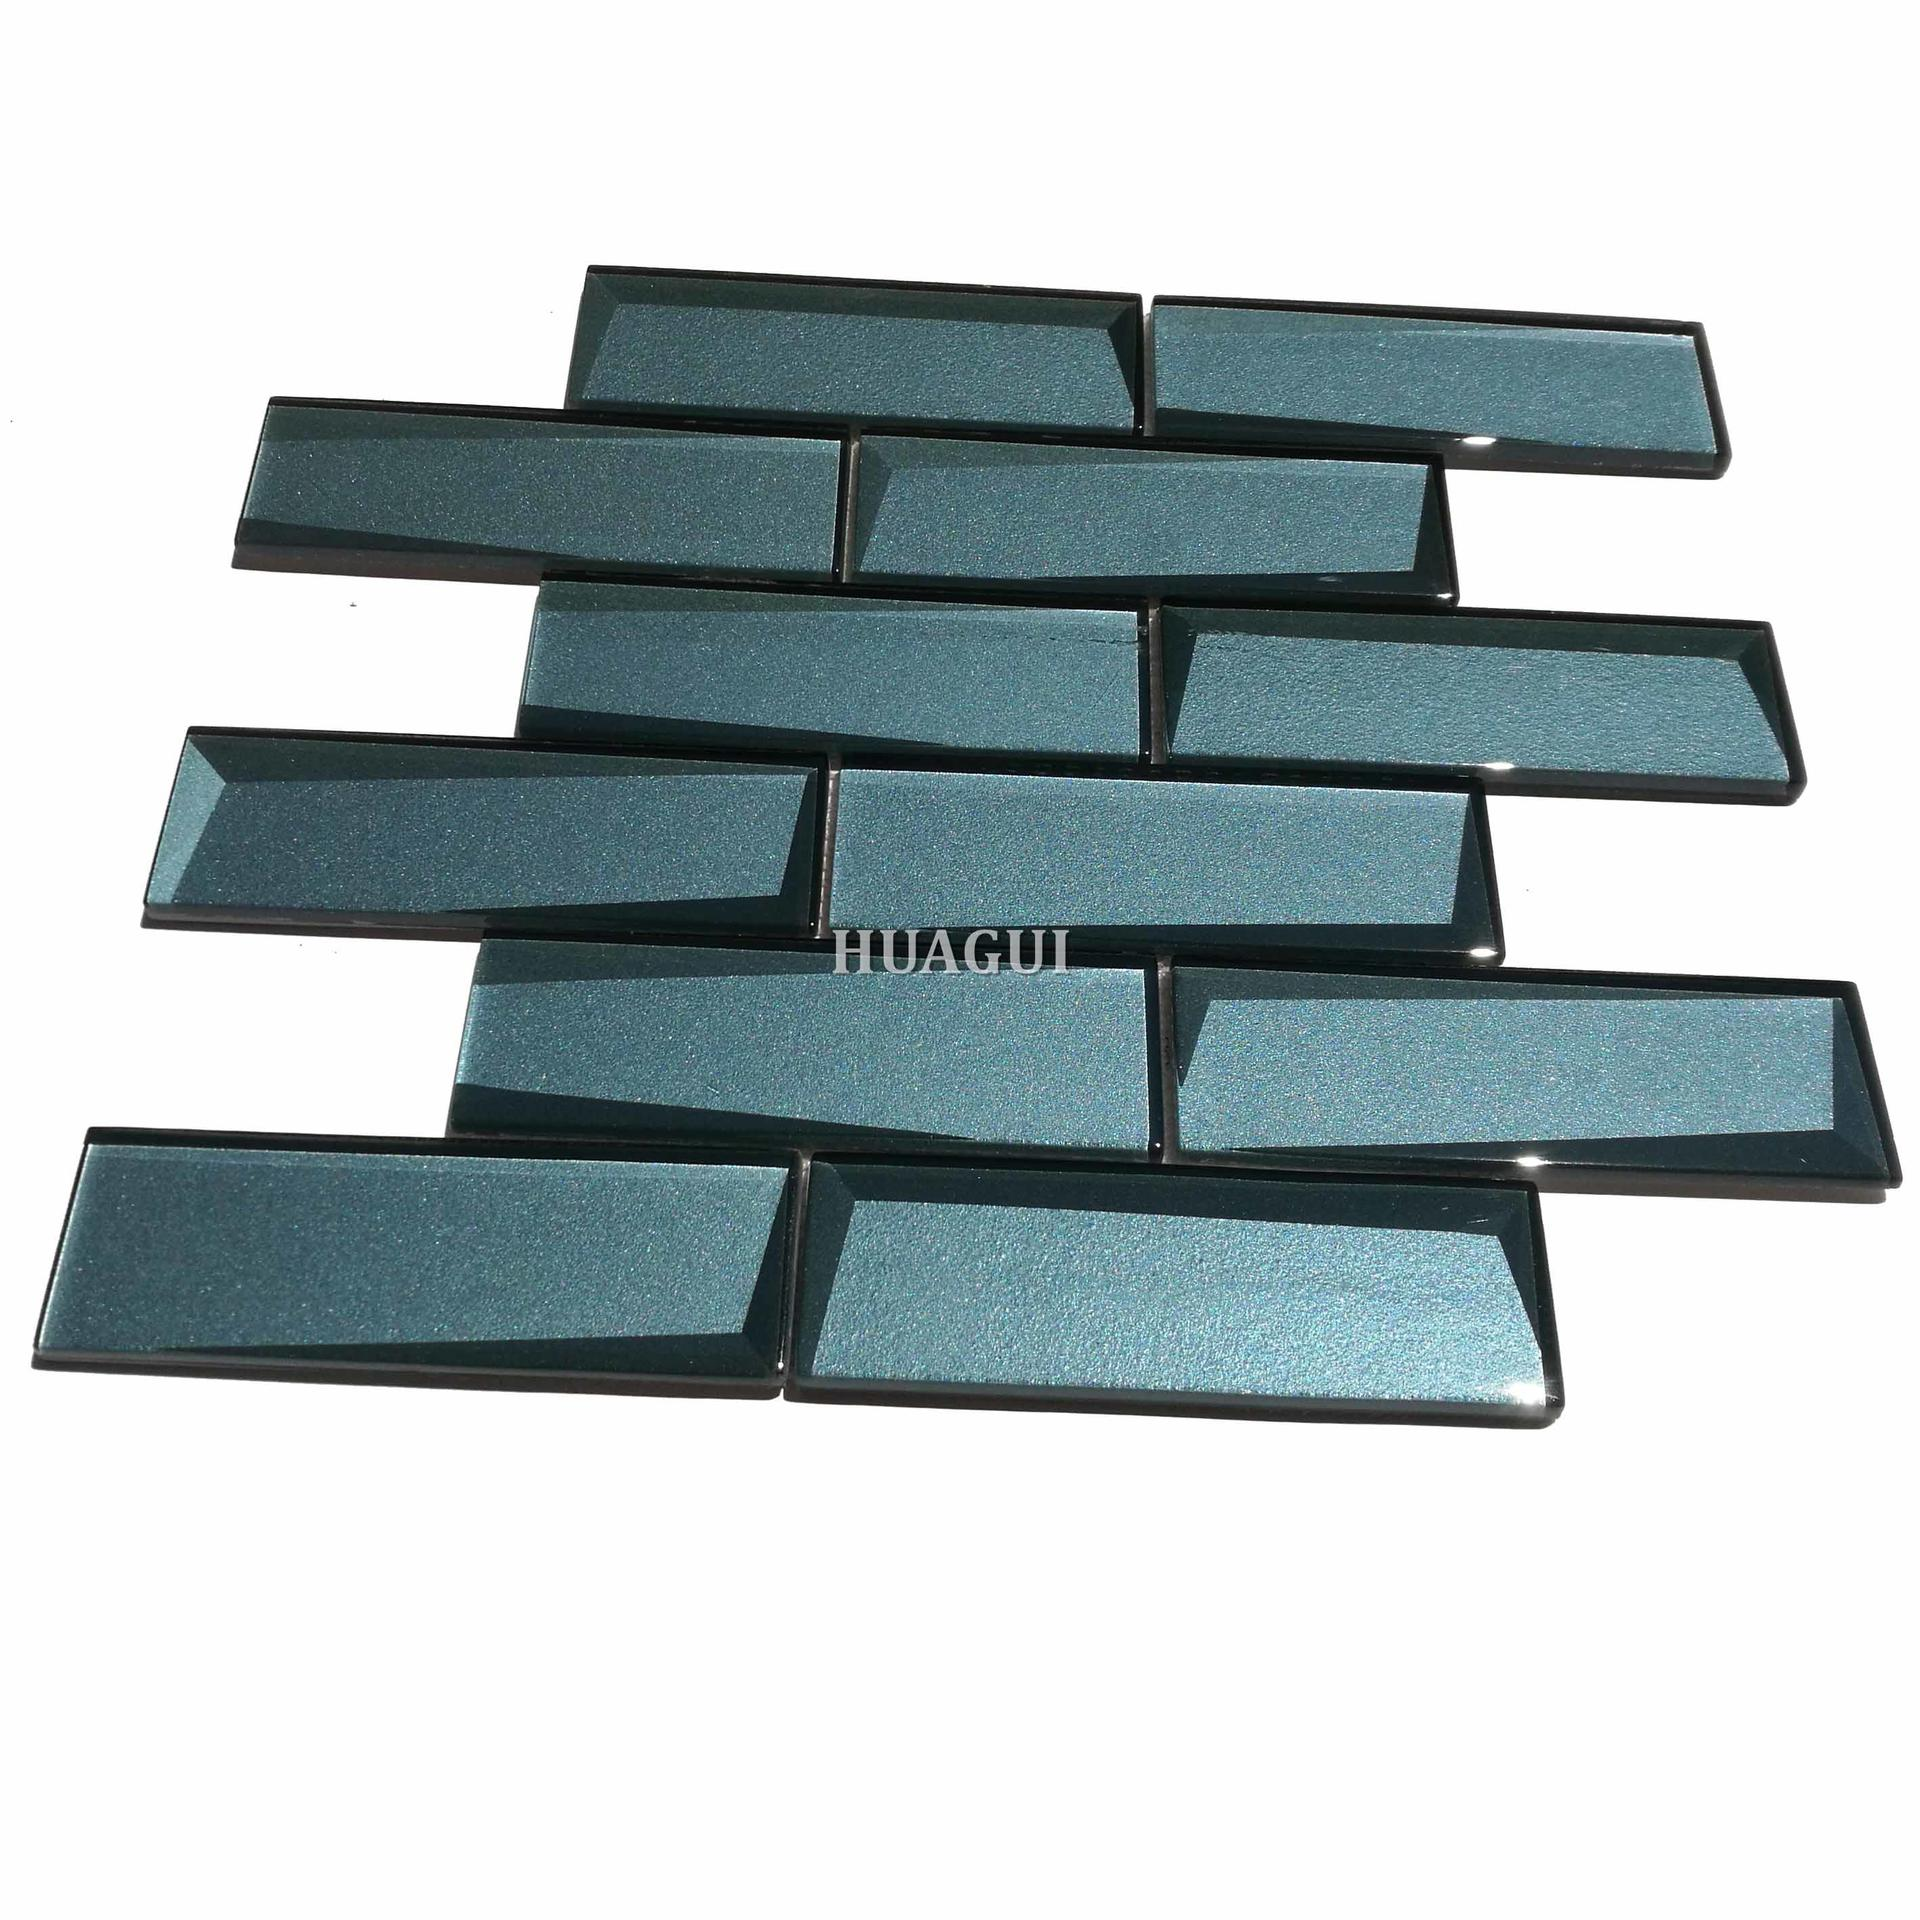 Best place to buy 3d beveled glass tile online